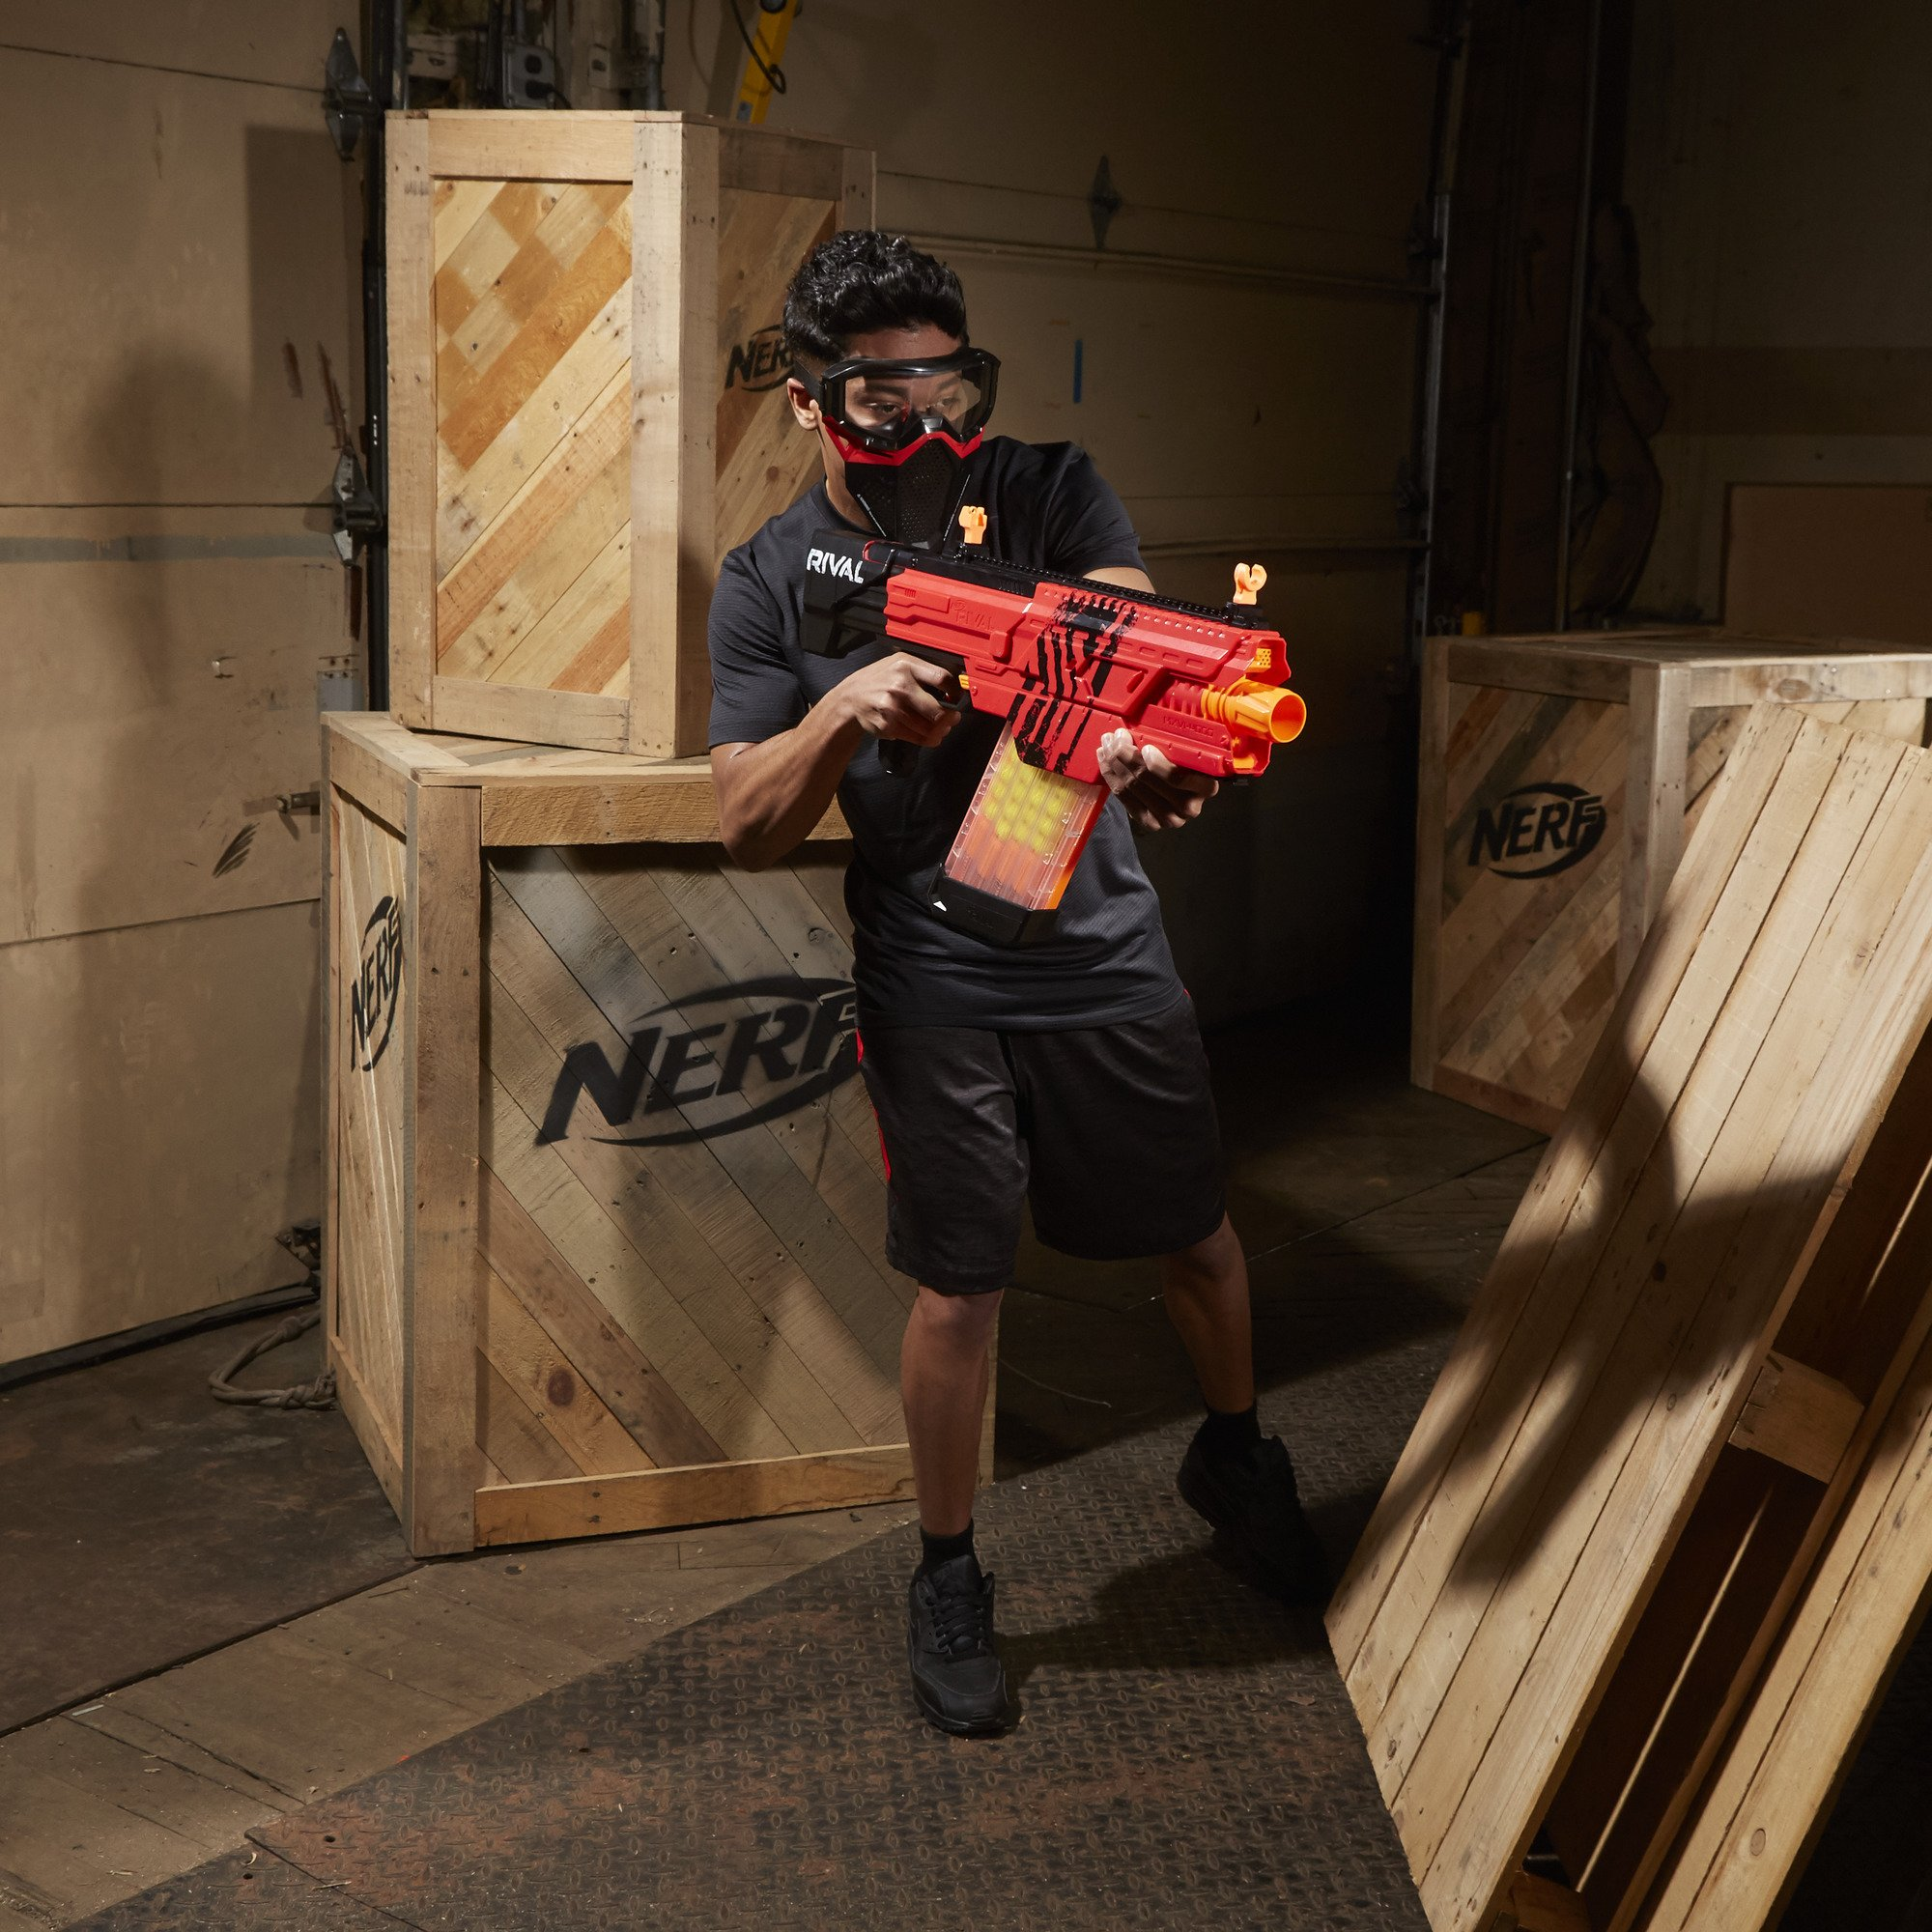 Nerf Rival Khaos MXVI-4000 Blaster (Red) by NERF (Image #9)